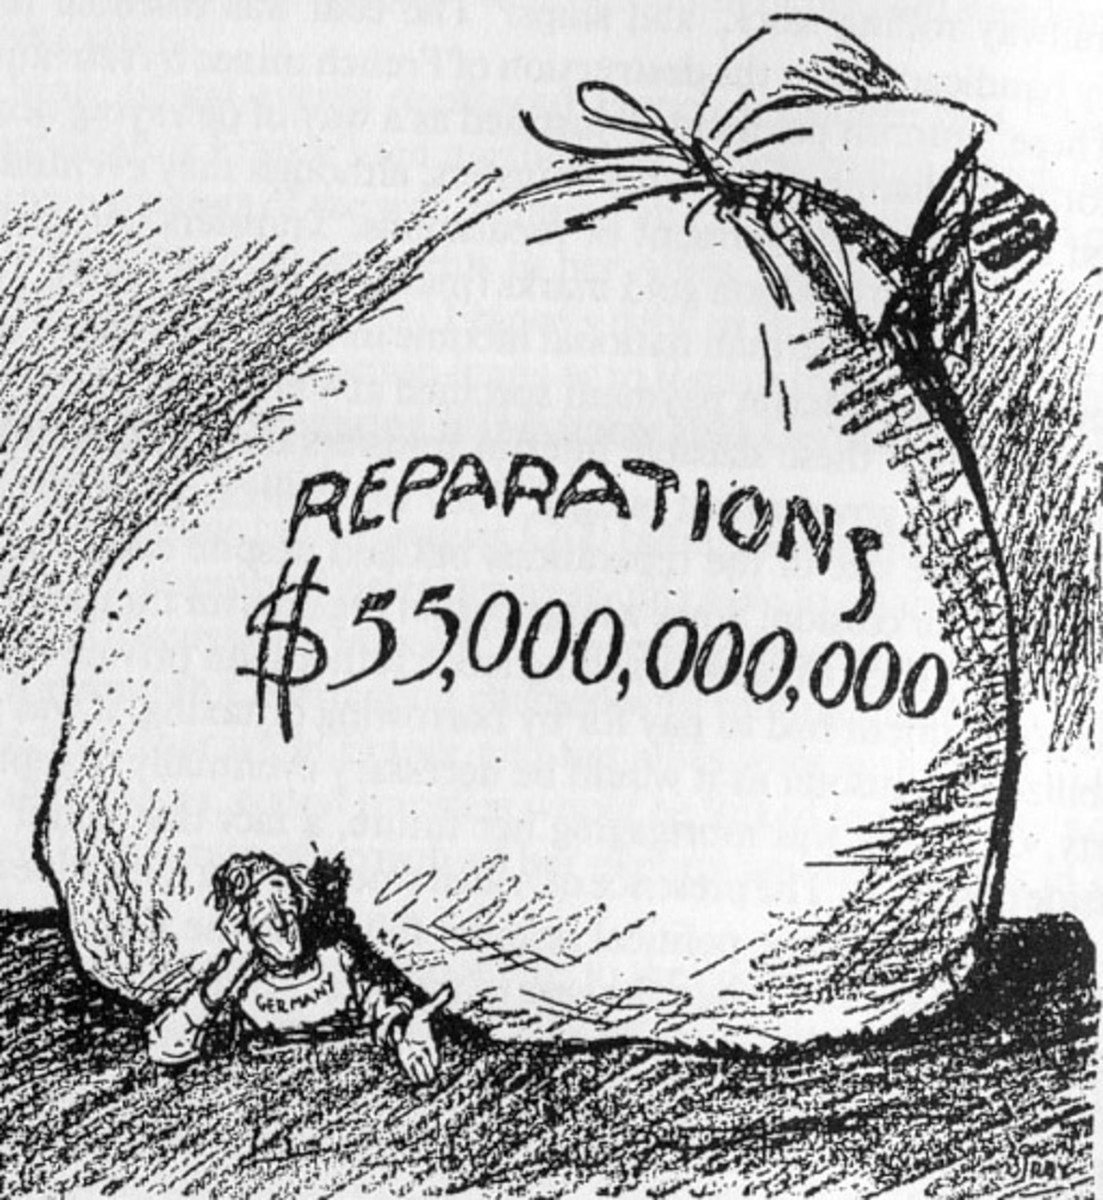 A typical view of the reparations, but one which is wrong.